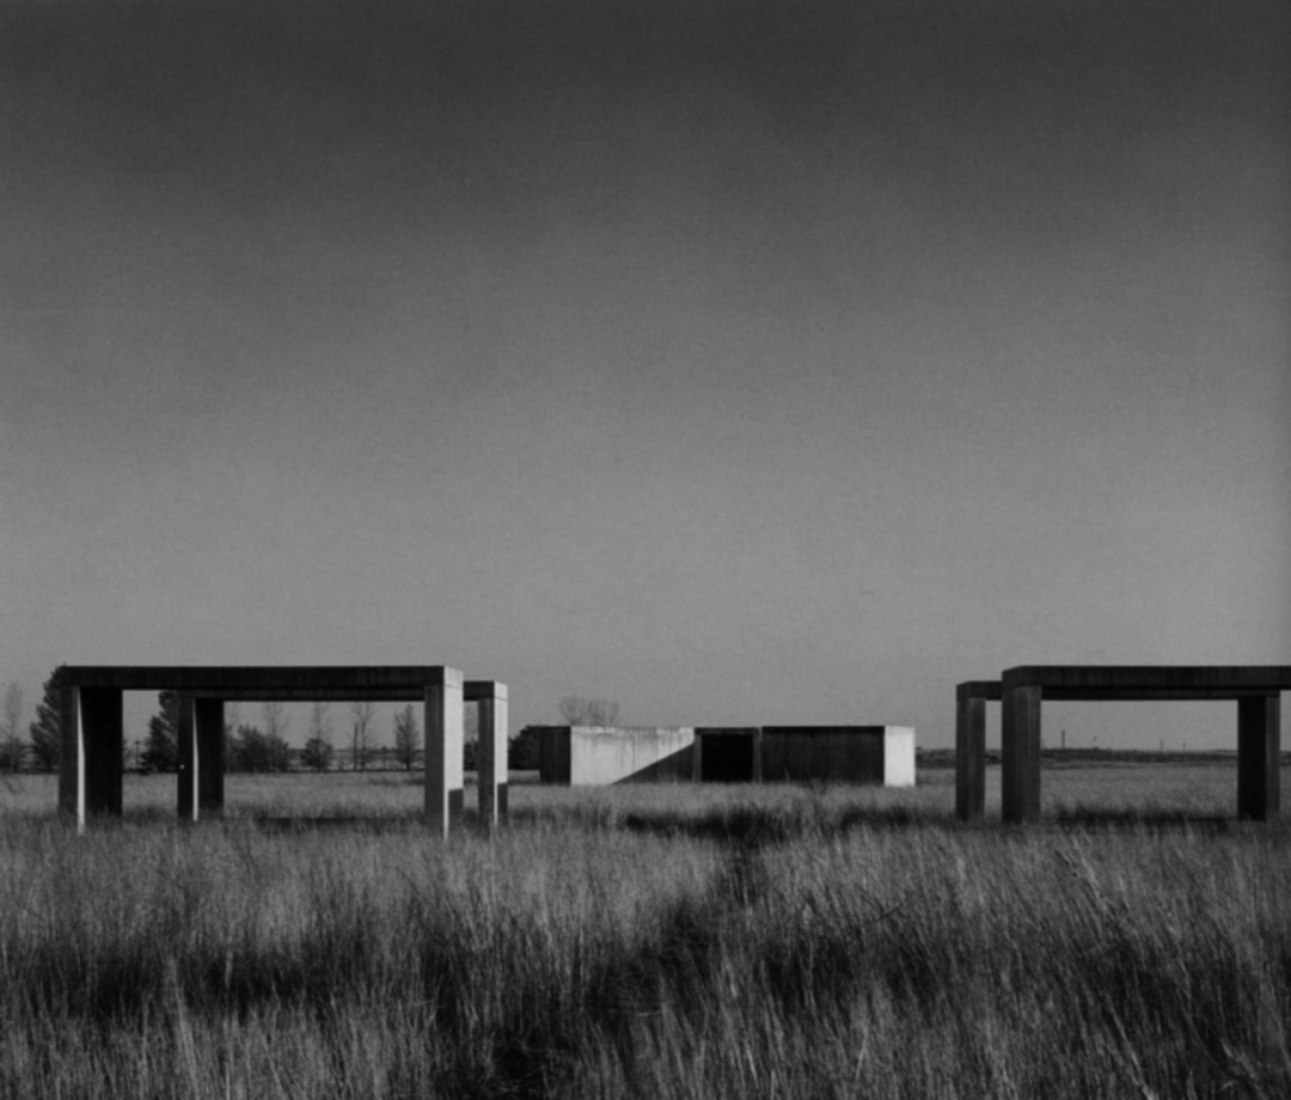 Minimalismo revisado por Enric Llorach. Donald Judd, Permanent Installation of Concrete Works, Chinati Foundation, Nicholas Serota (ed.), Donald Judd, Tate Publishing, Londres, 2004. Imagen cortesía de Enric Llorach.